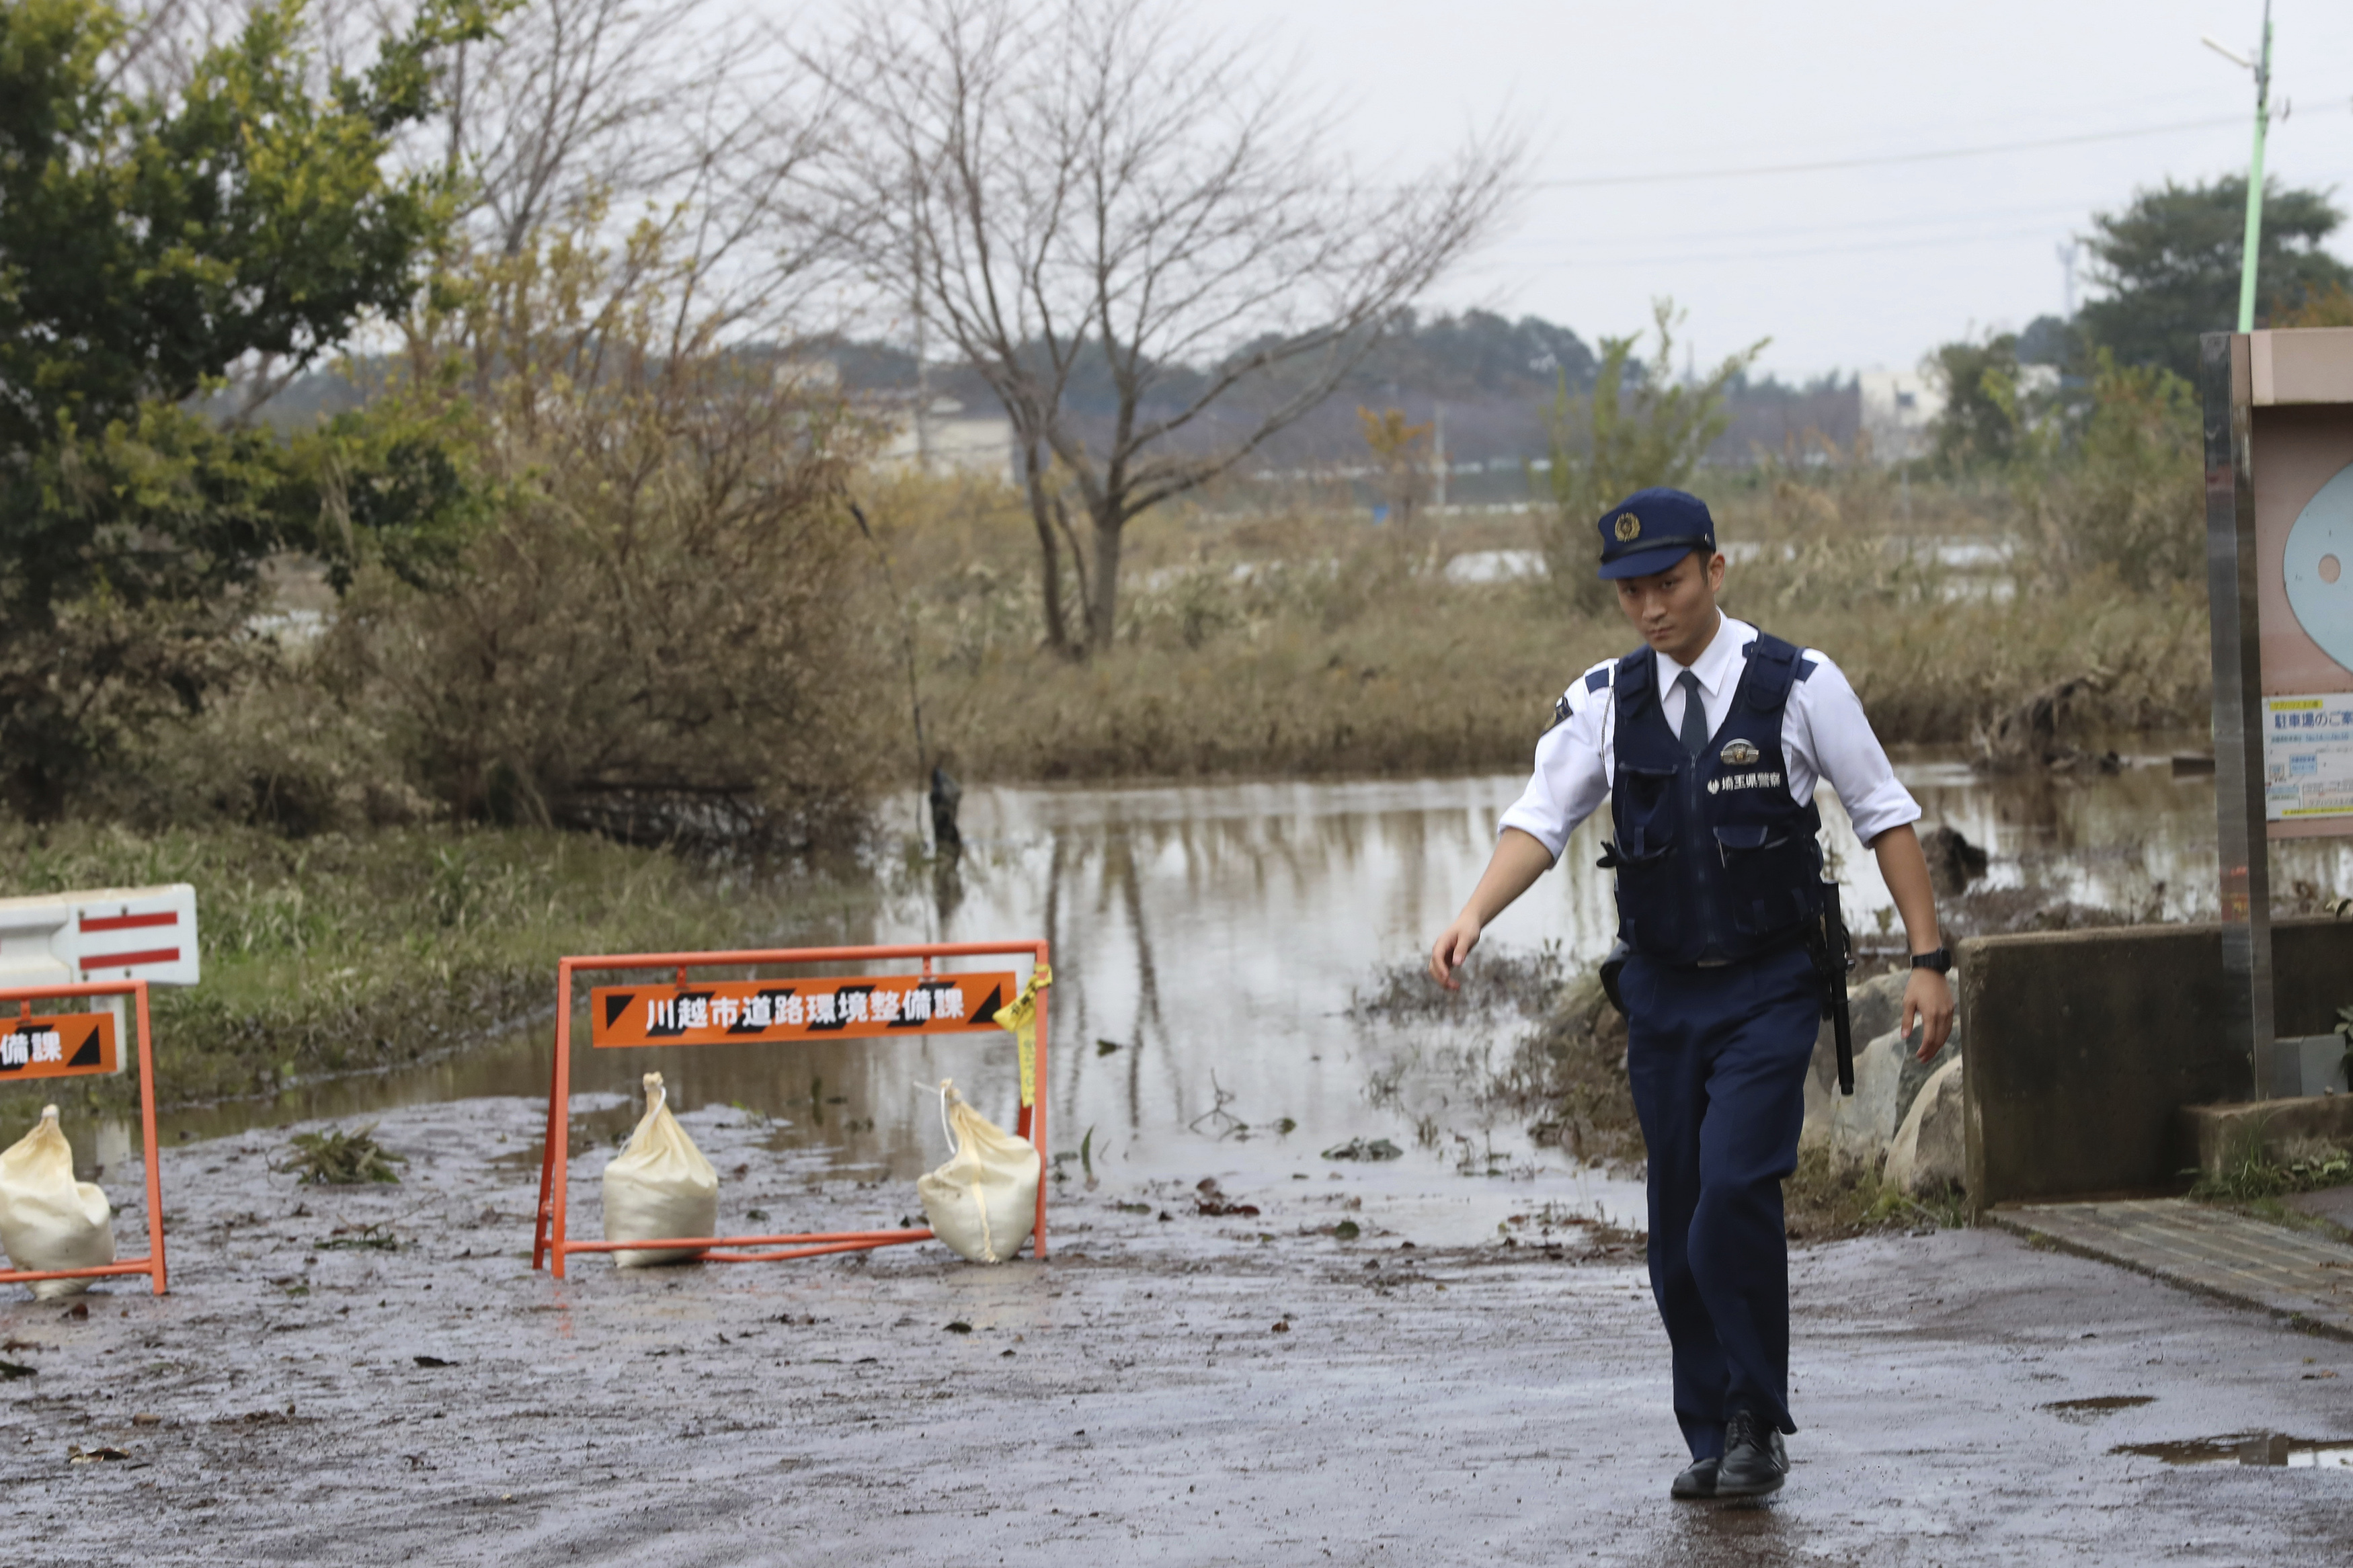 A police checks on a flooded street Monday, Oct. 14, 2019, in Kawagoe City, Japan. Typhoon Hagibis dropped record amounts of rain for a period in some spots, according to meteorological officials, causing more than 20 rivers to overflow. Some of the muddy waters in streets, fields and residential areas have subsided. But many places remained flooded, with homes and surrounding roads covered in mud and littered with broken wooden pieces and debris. (AP Photo/Eugene Hoshiko)